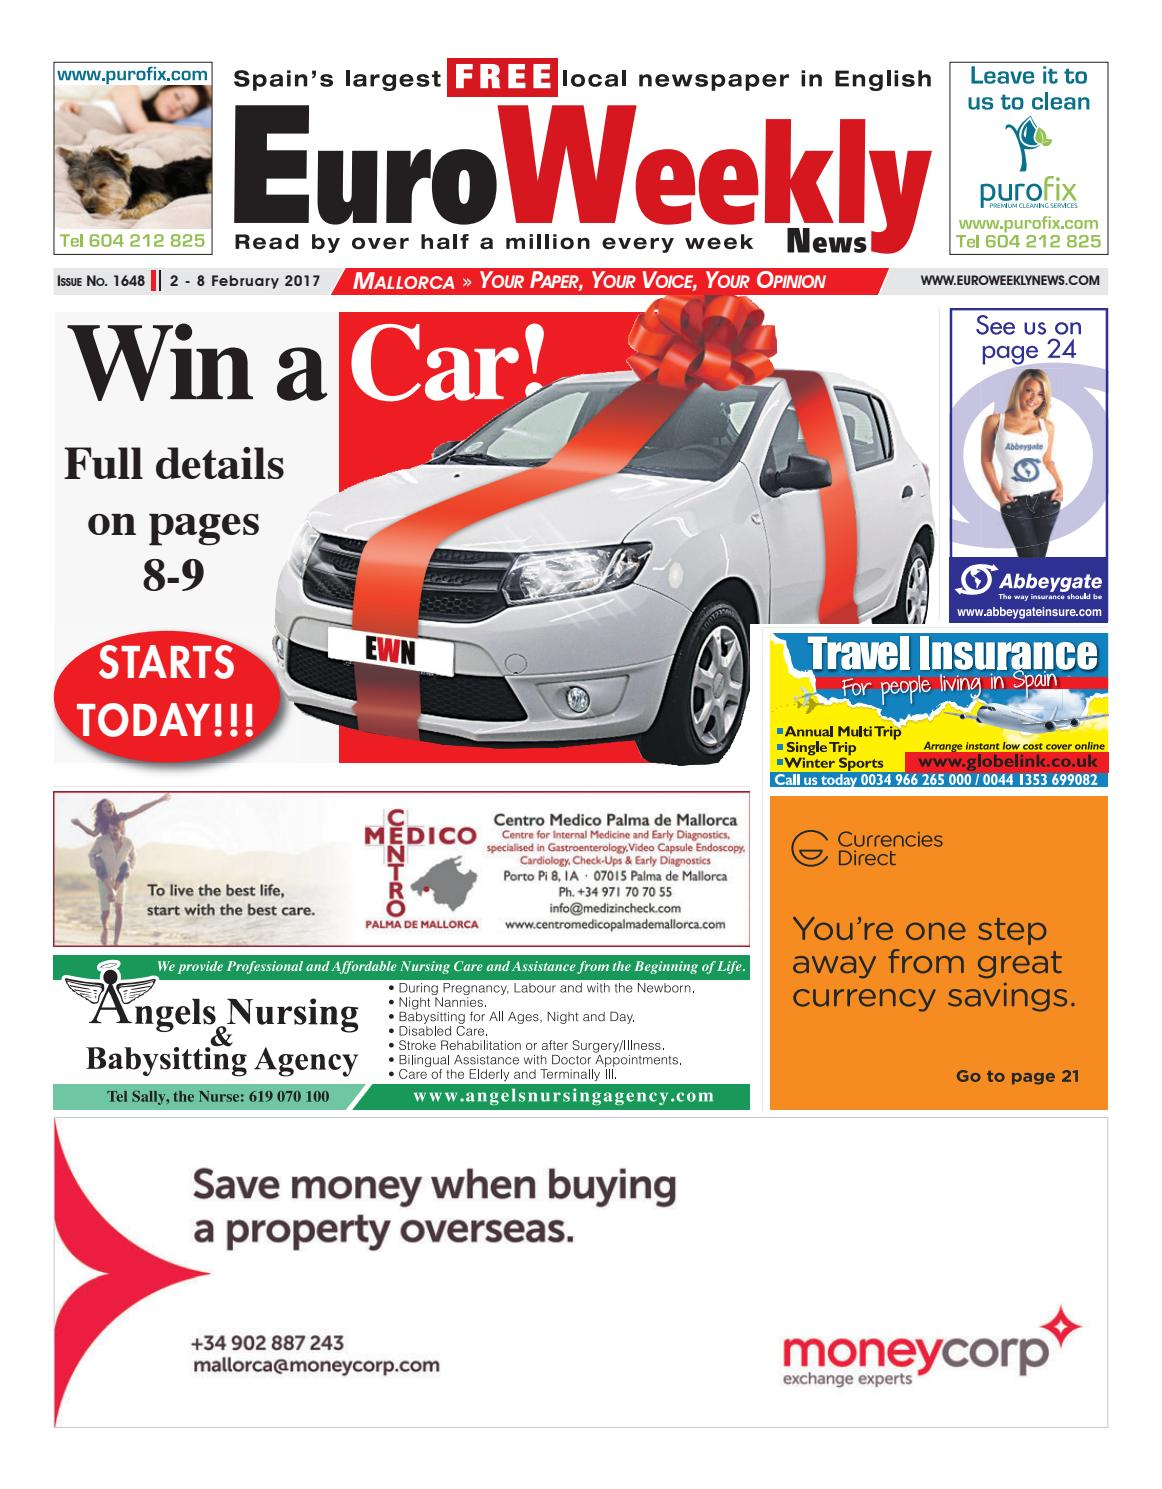 Euro weekly news mallorca 2 8 february 2017 issue 1648 by euro euro weekly news mallorca 2 8 february 2017 issue 1648 by euro weekly news media sa issuu fandeluxe Gallery